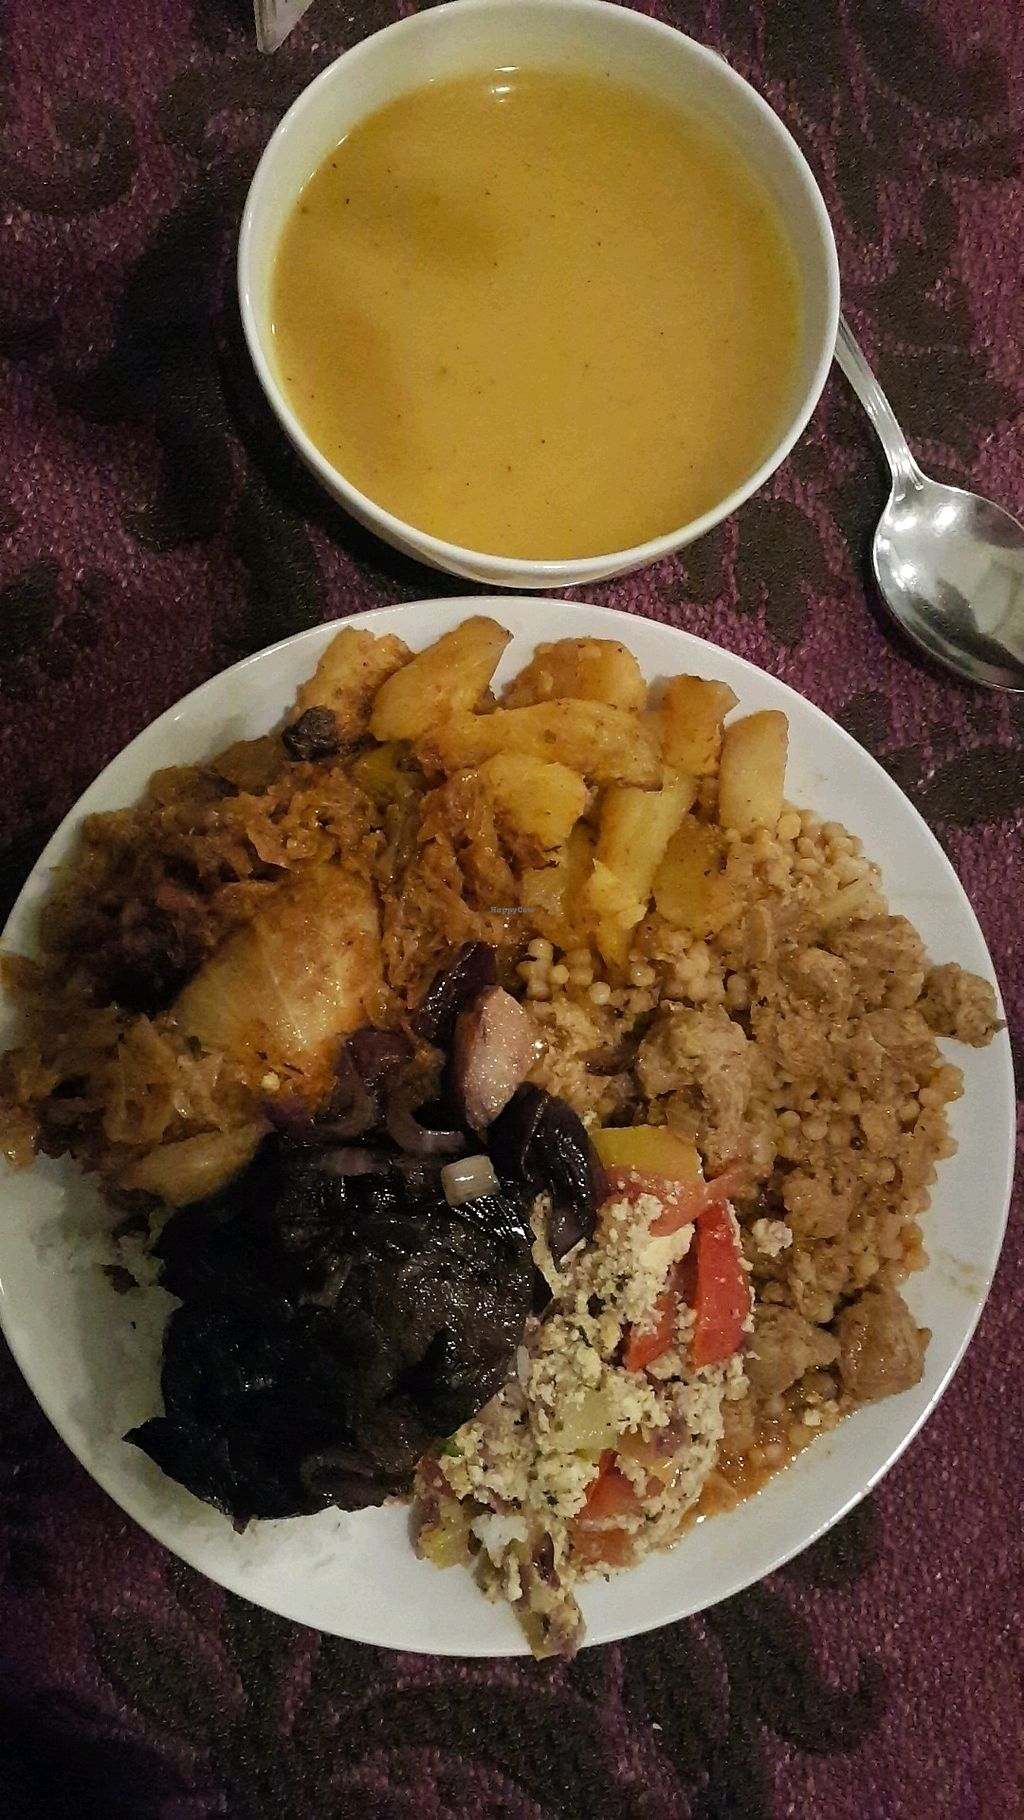 """Photo of Edeni Vegan  by <a href=""""/members/profile/sarz0505"""">sarz0505</a> <br/>Vegan mixed plate with pumpkin soup <br/> December 27, 2017  - <a href='/contact/abuse/image/5490/339614'>Report</a>"""